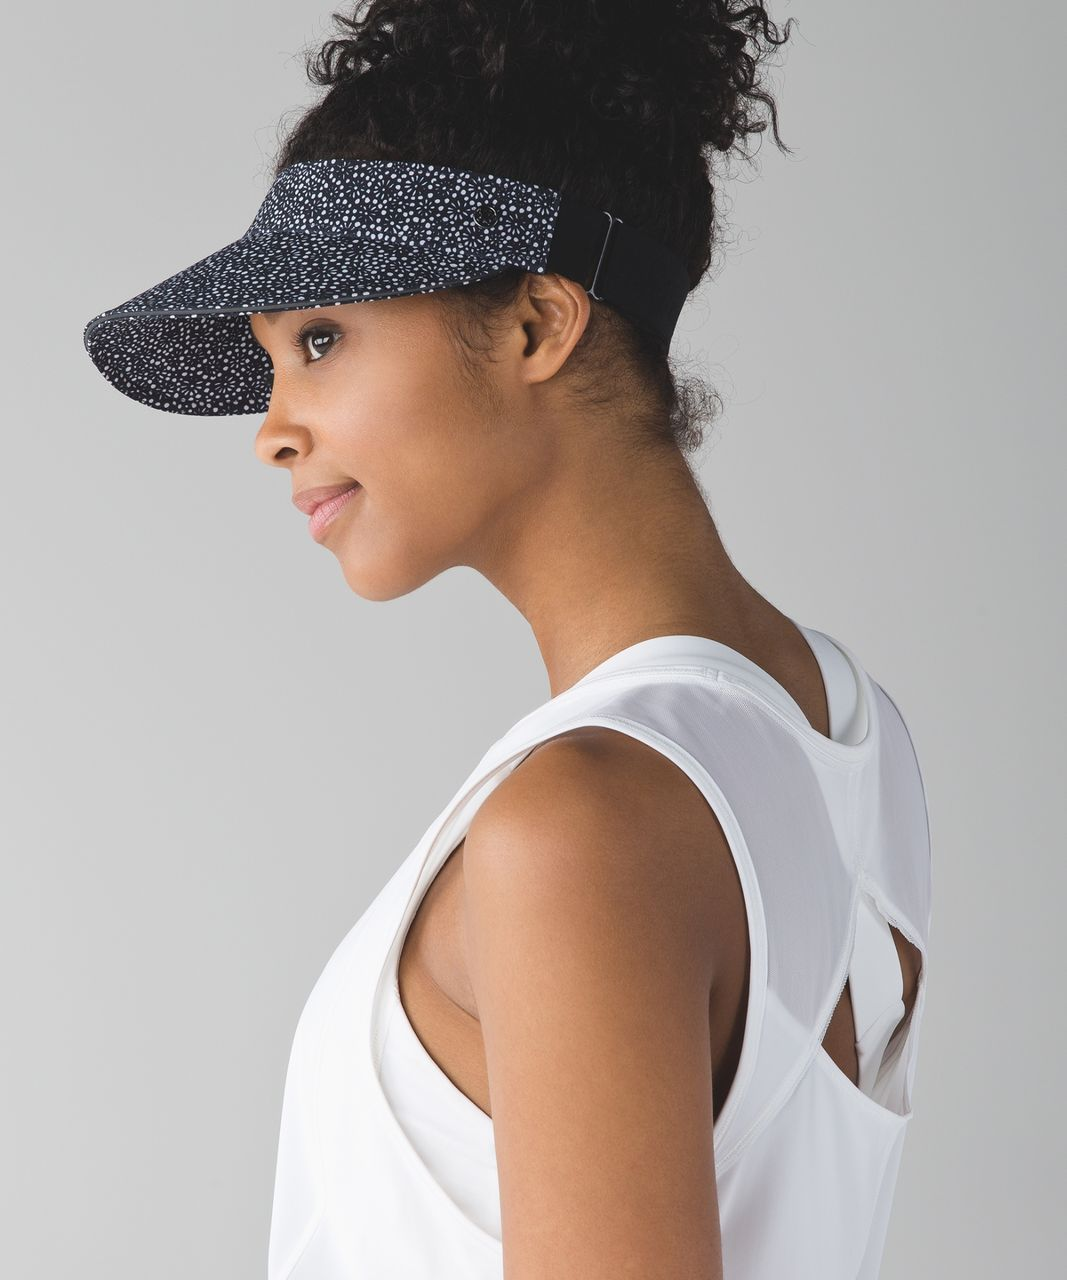 Lululemon Fast Paced Run Visor - Freckle Flower Black White / Black